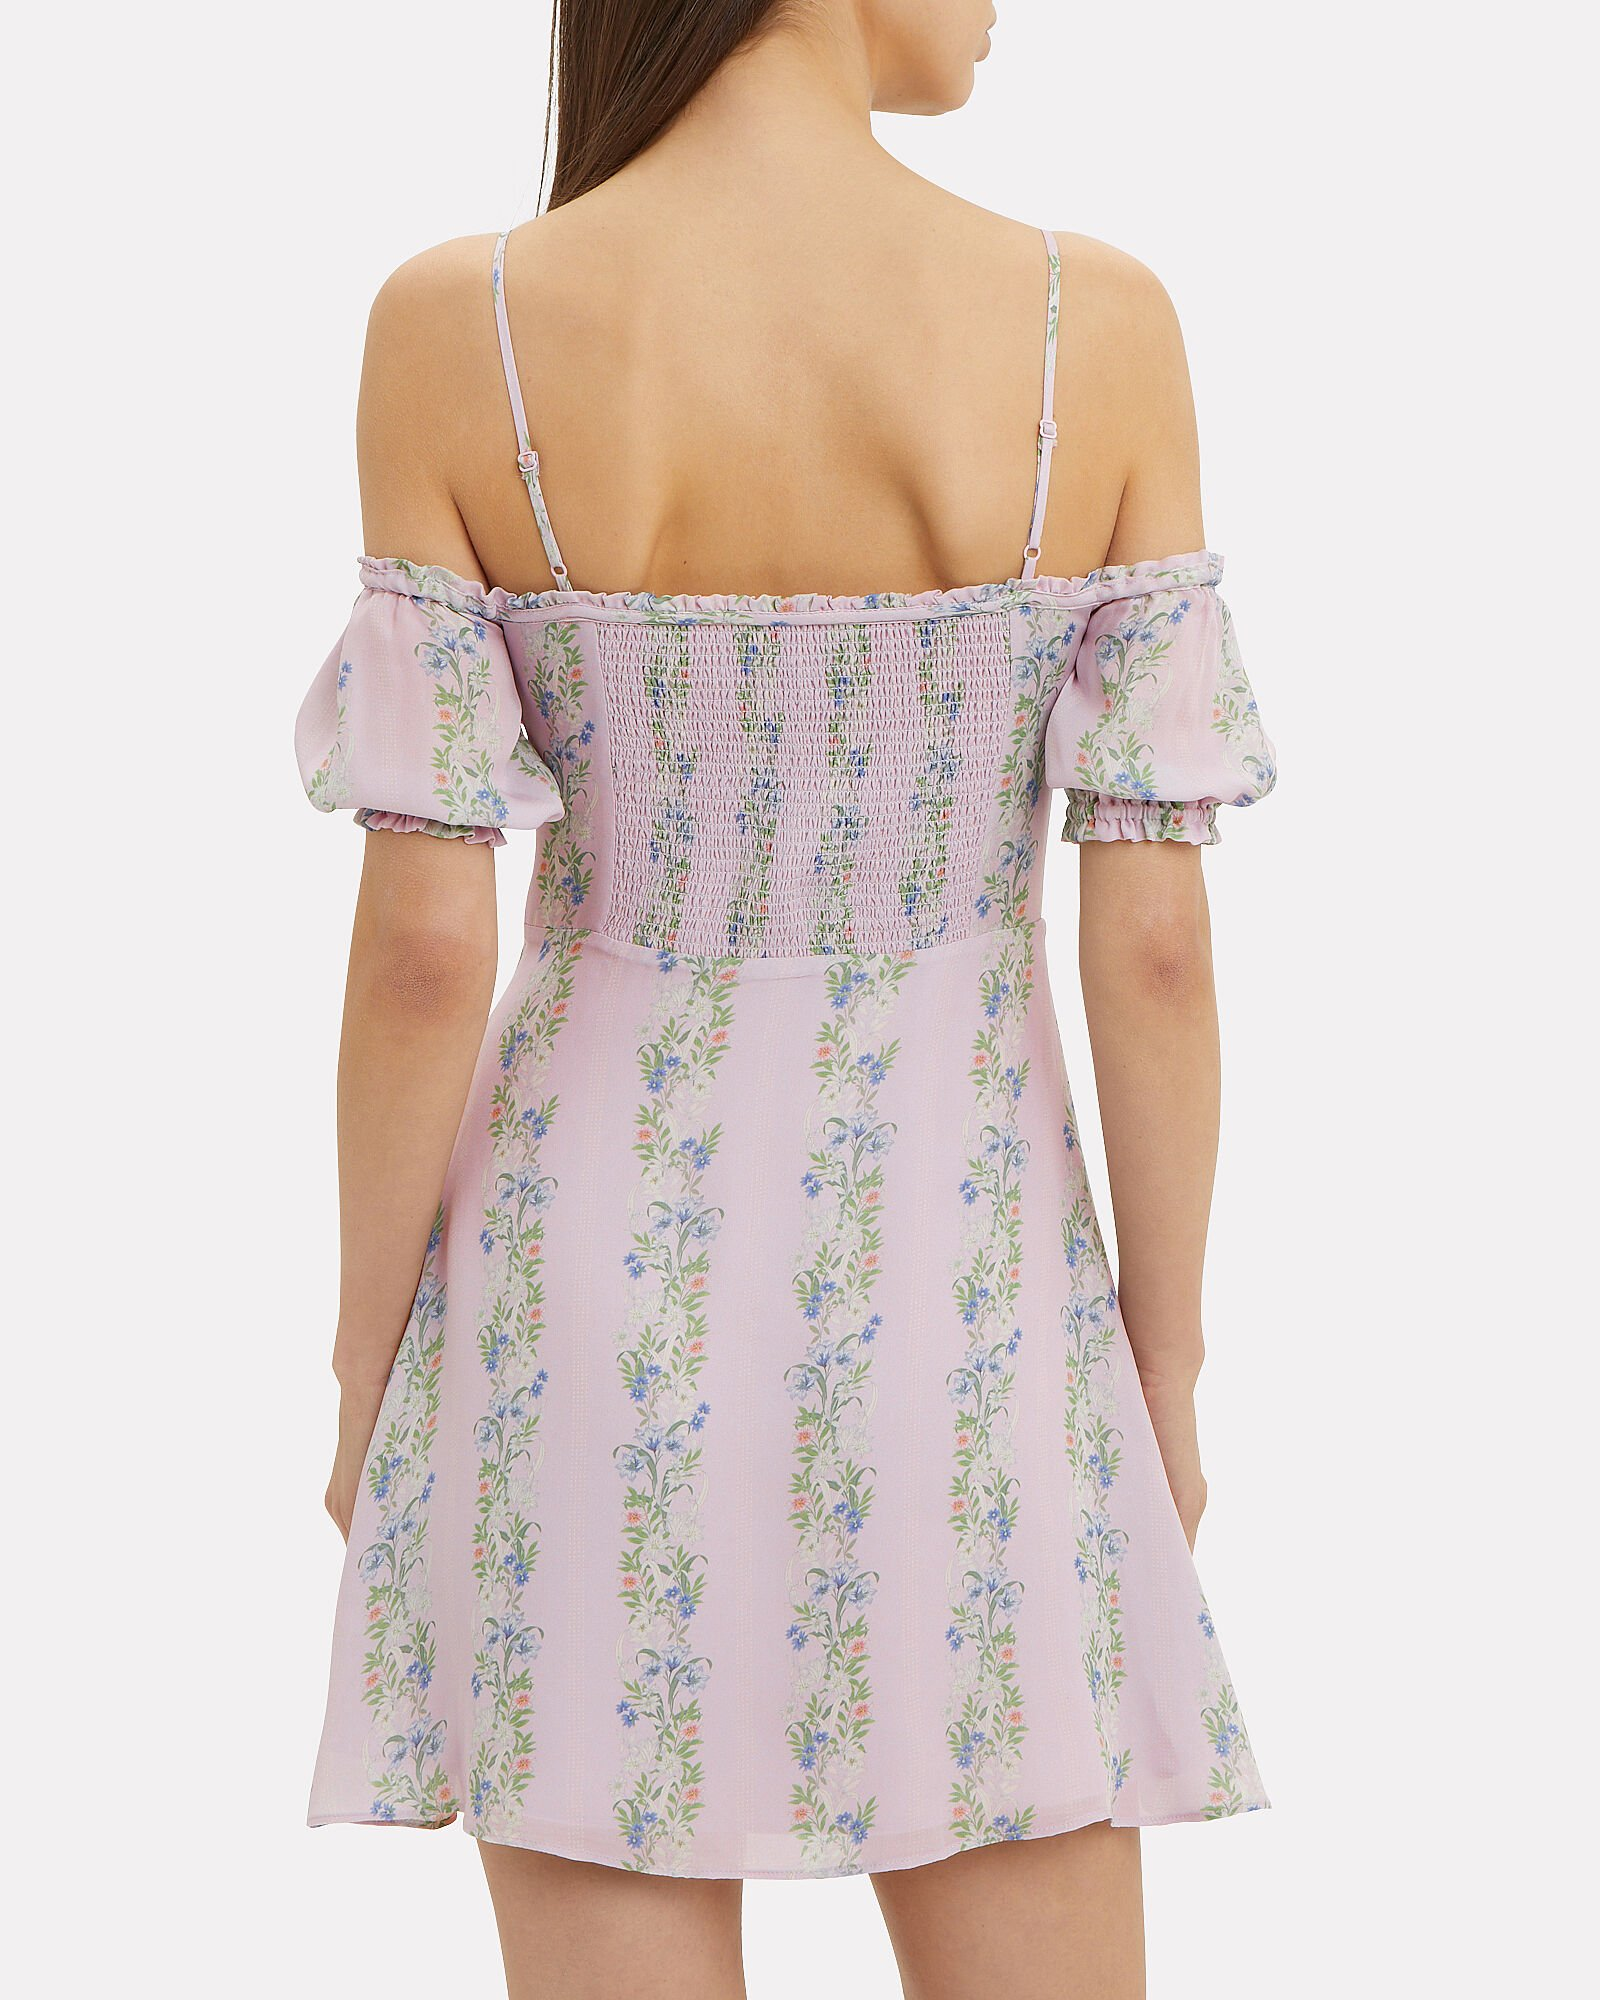 Lily Floral Mini Dress, PURPLE-LT, hi-res